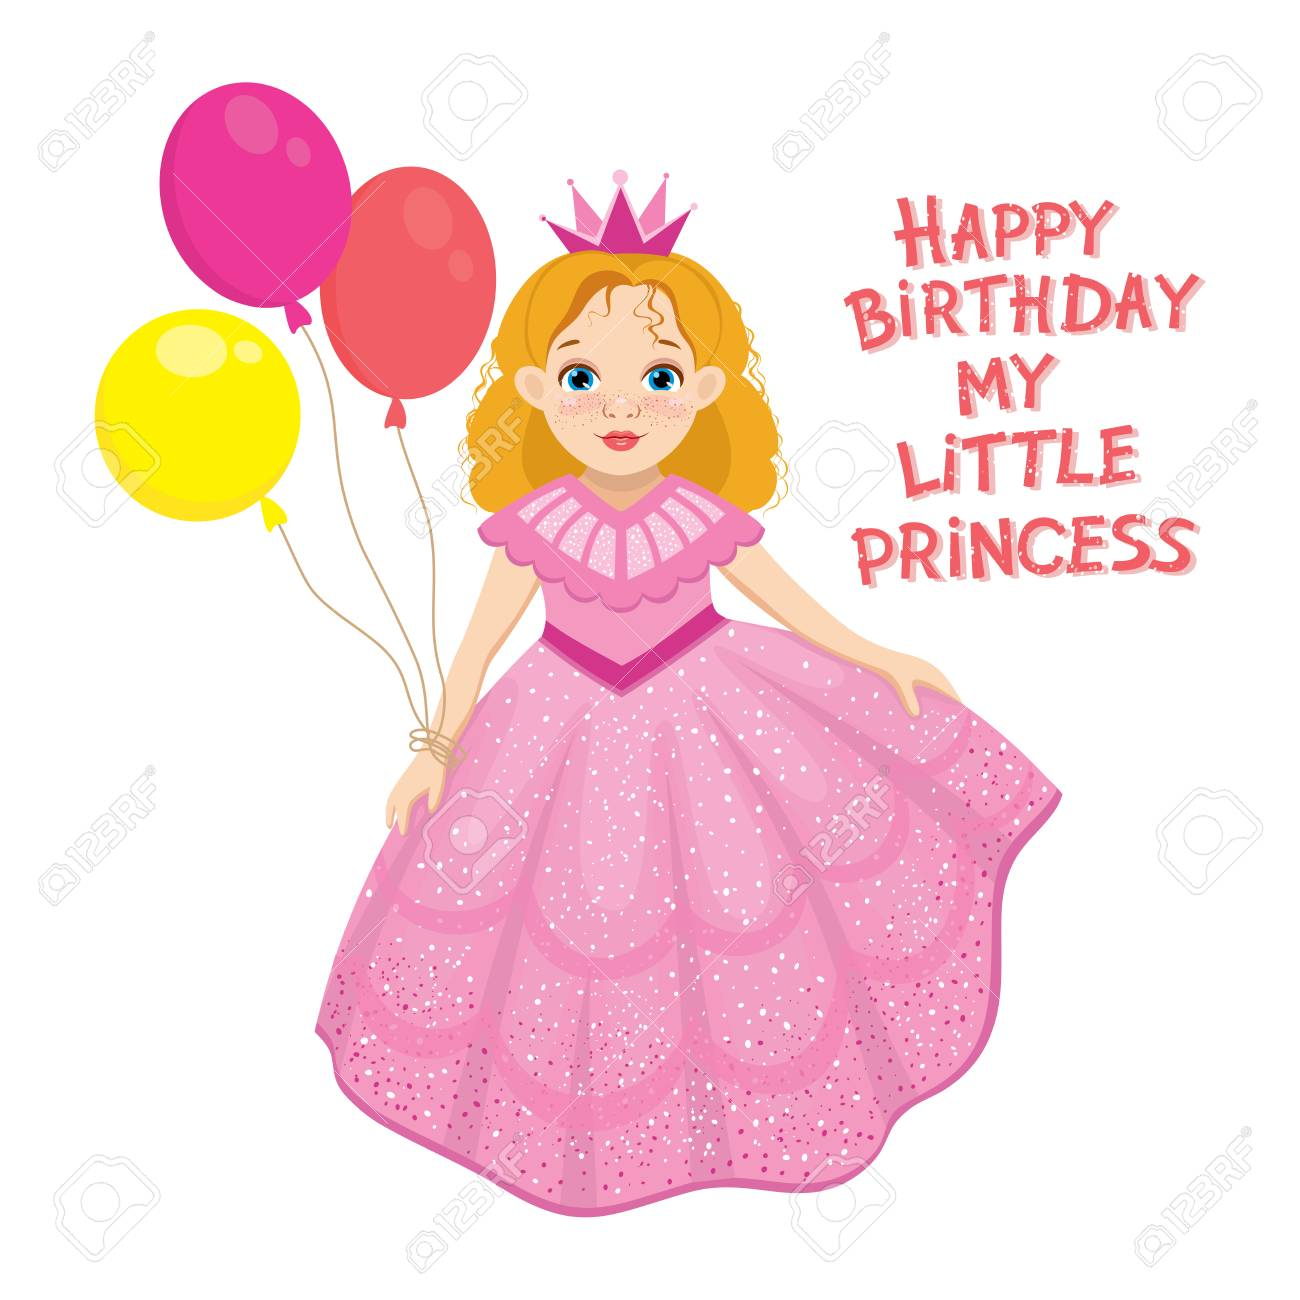 Happy Birthday Cute Fairy Girl Greeting Card With Colorful Balloon